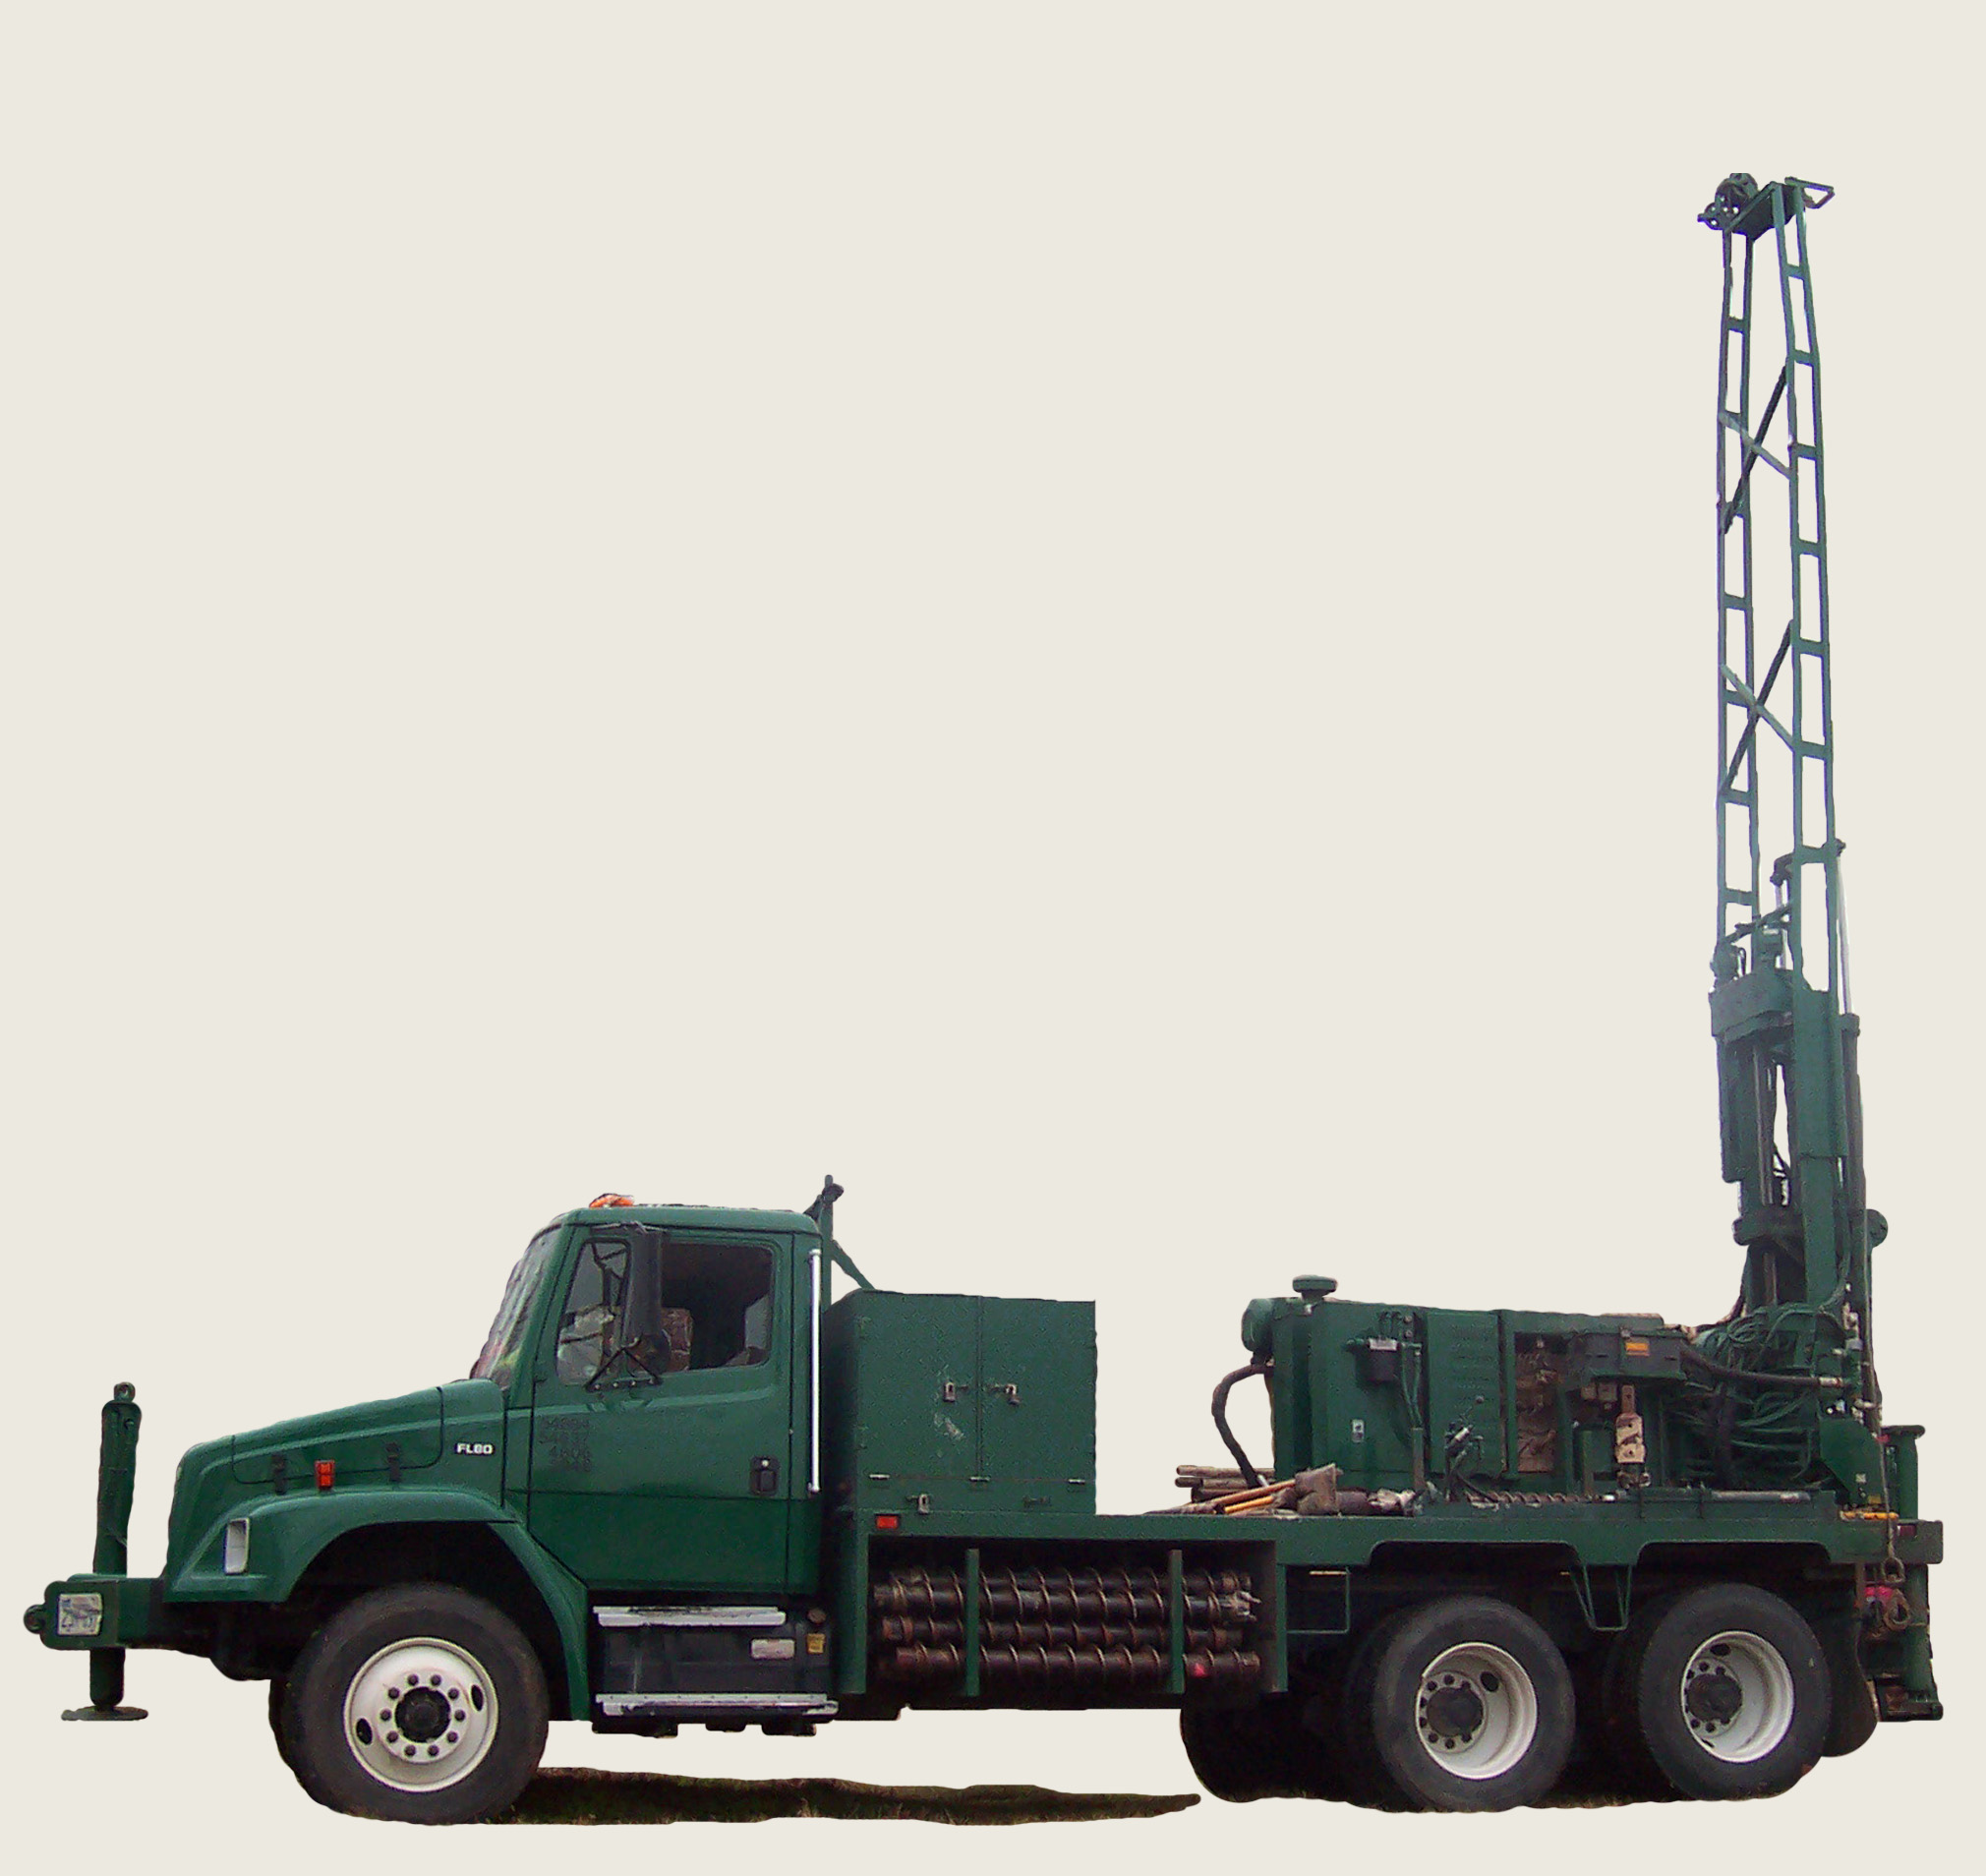 A Mobile Drilling Rig, Drilling Core Samples On A Gold Mining